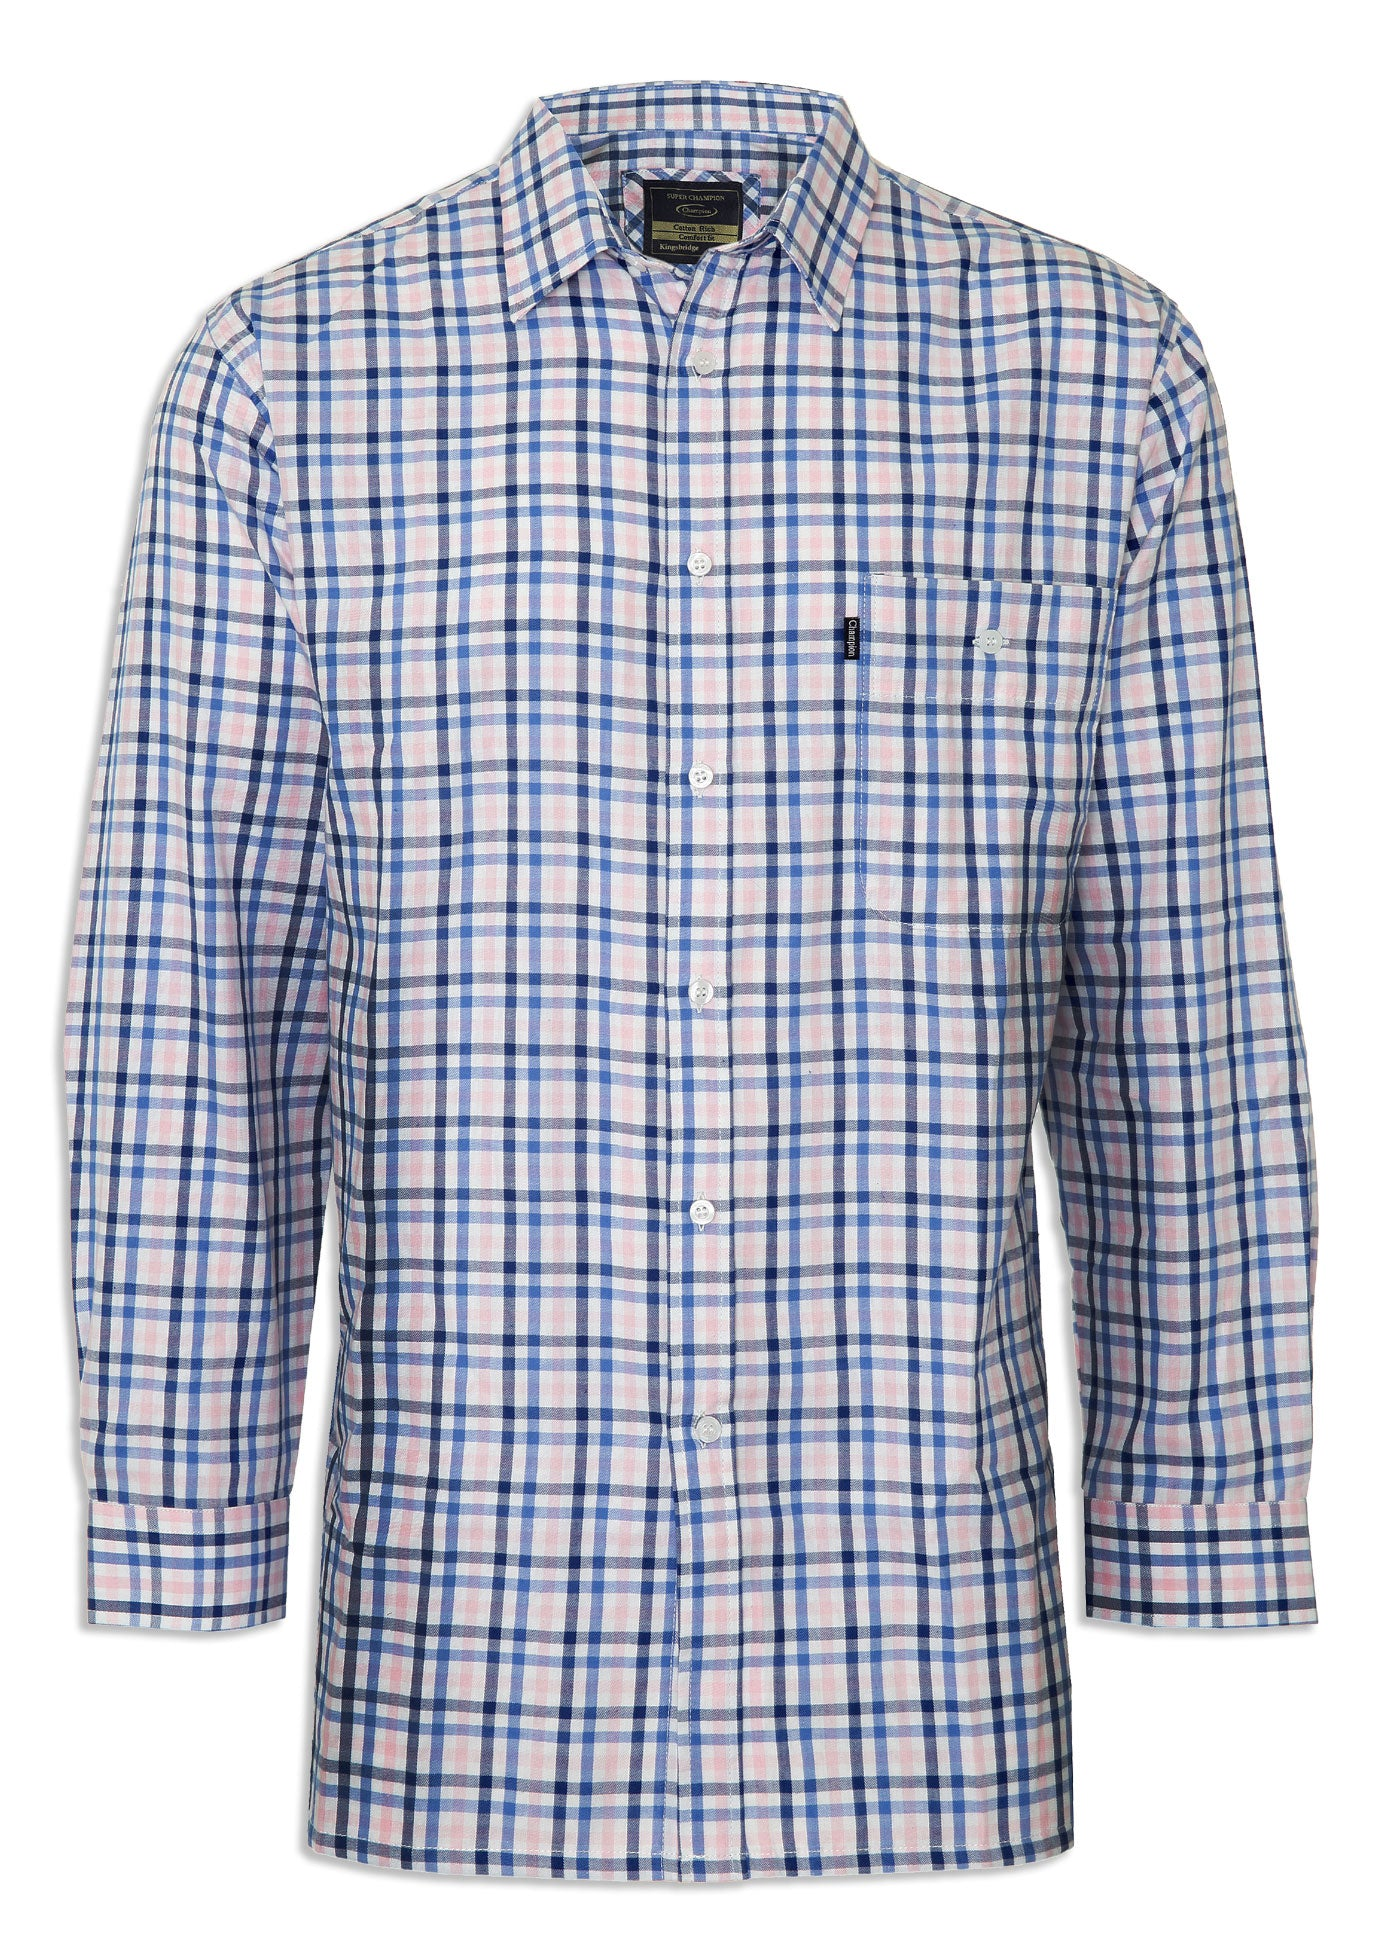 blue champin kningsbrideg smart Regimental check Shirt at very appealing price